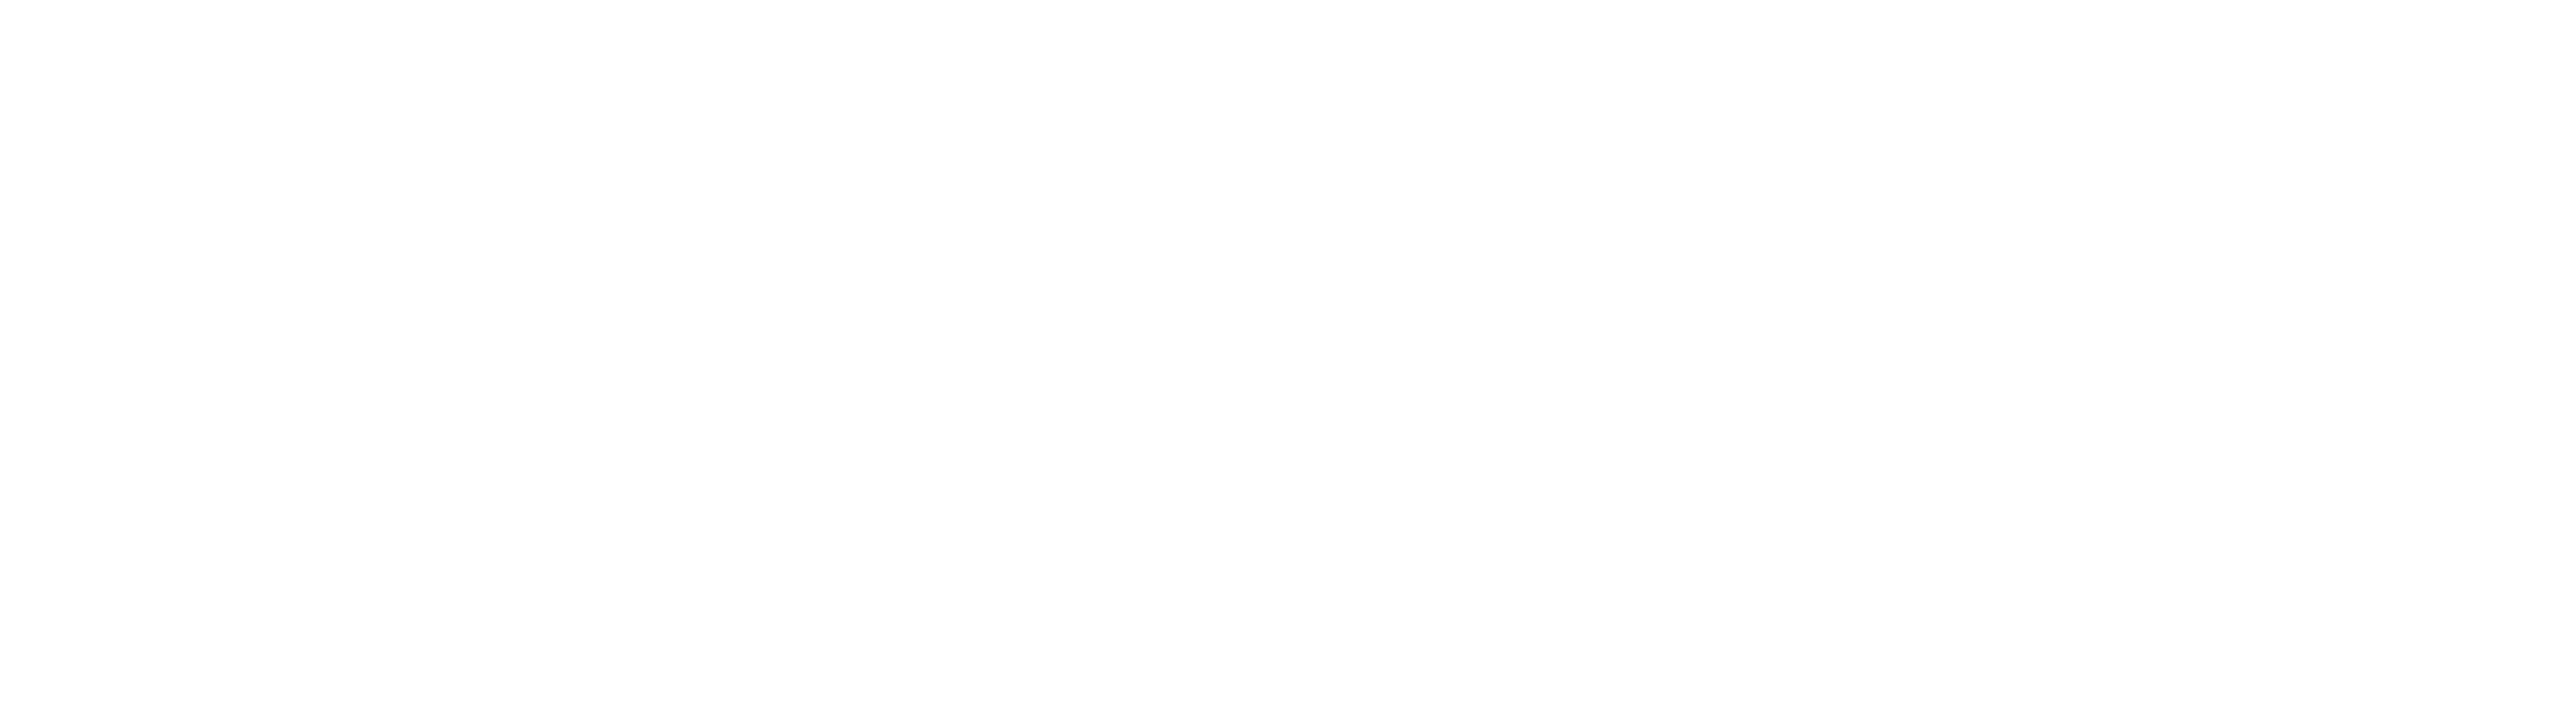 nth Solutions